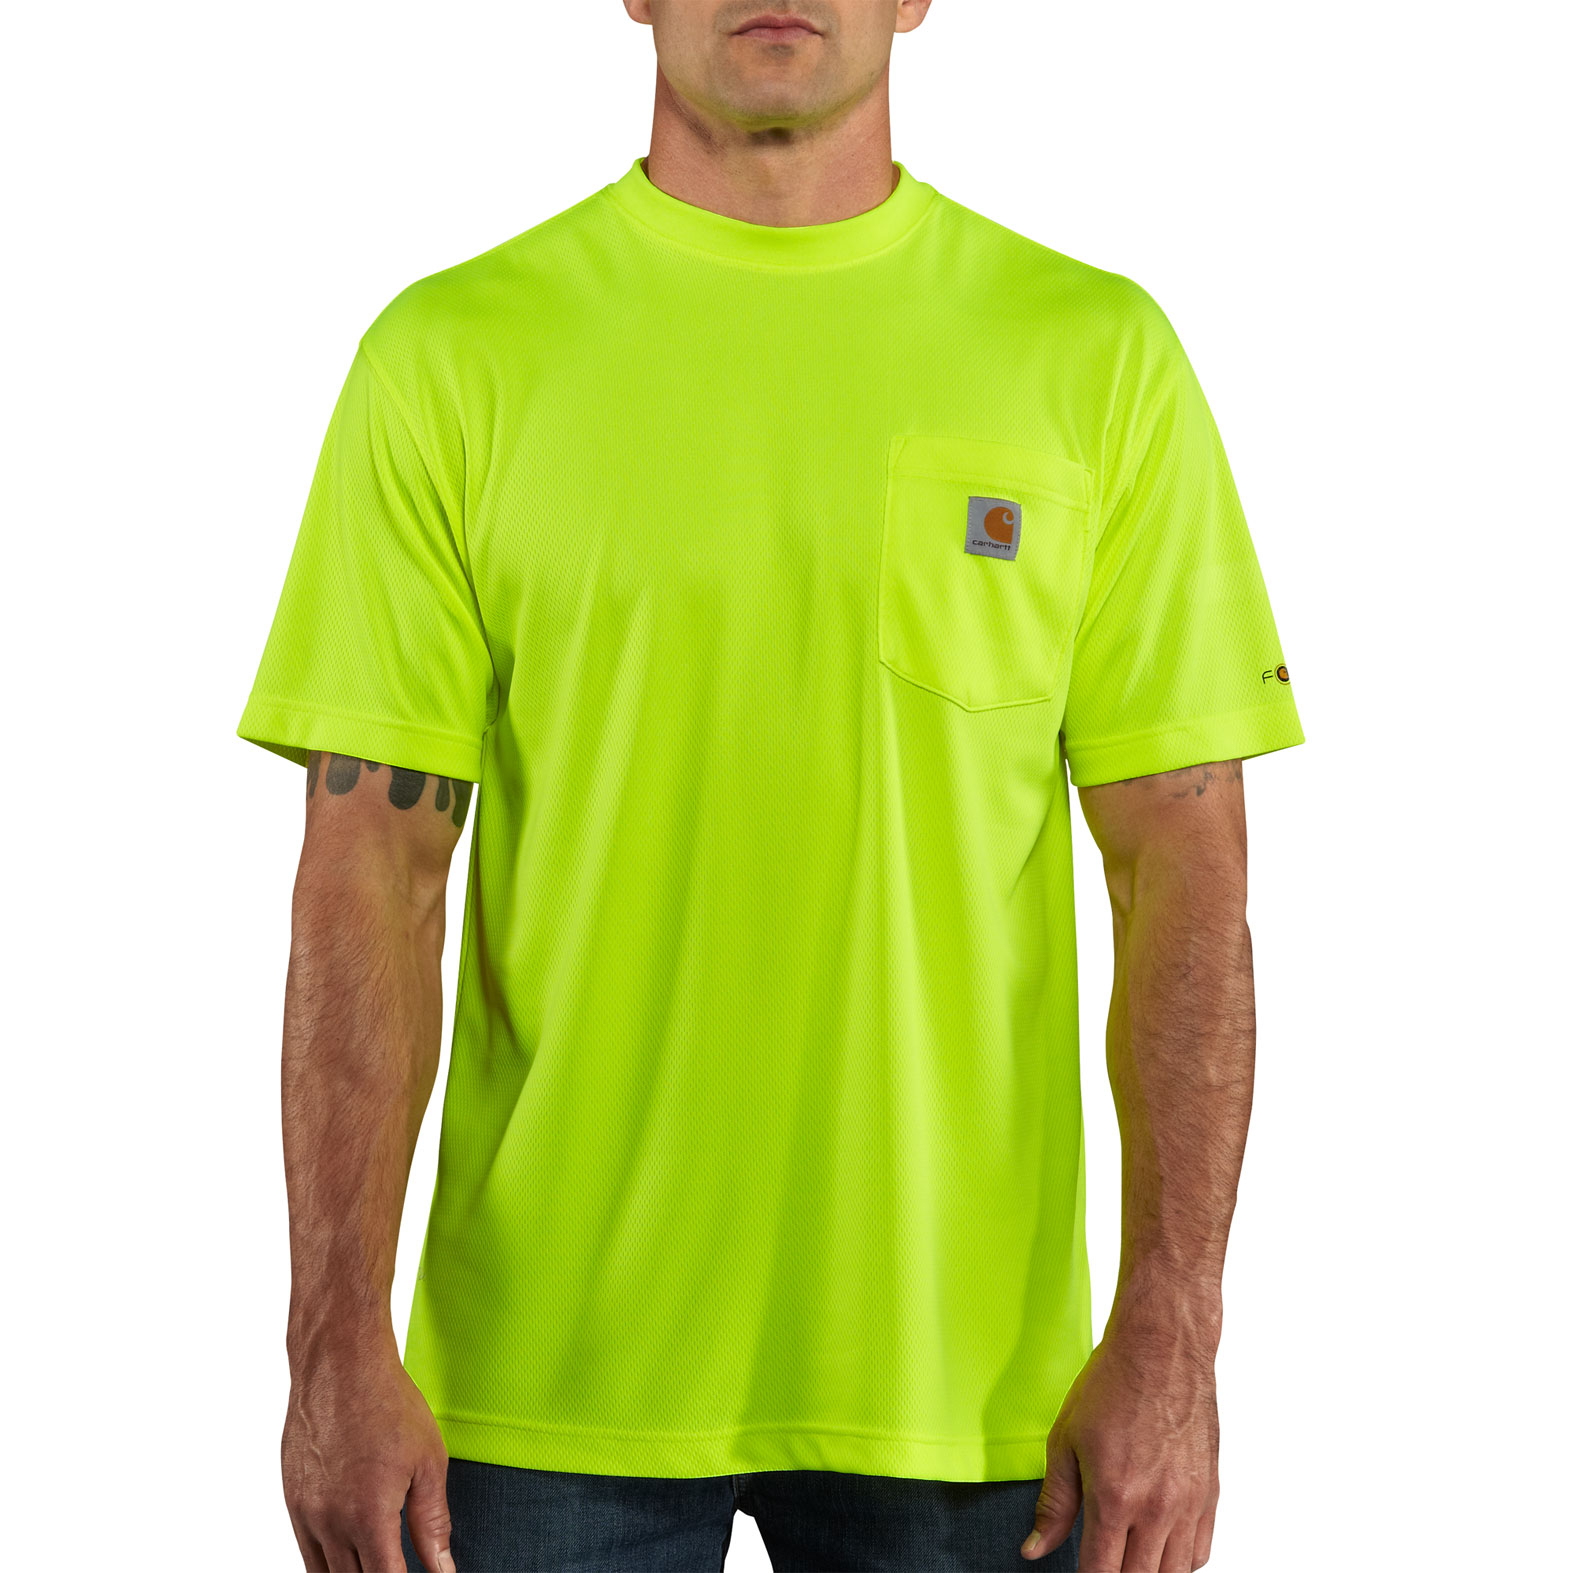 Mens Force� Color Enhanced HI Visibility Short Sleeve T-shirt from Carhartt